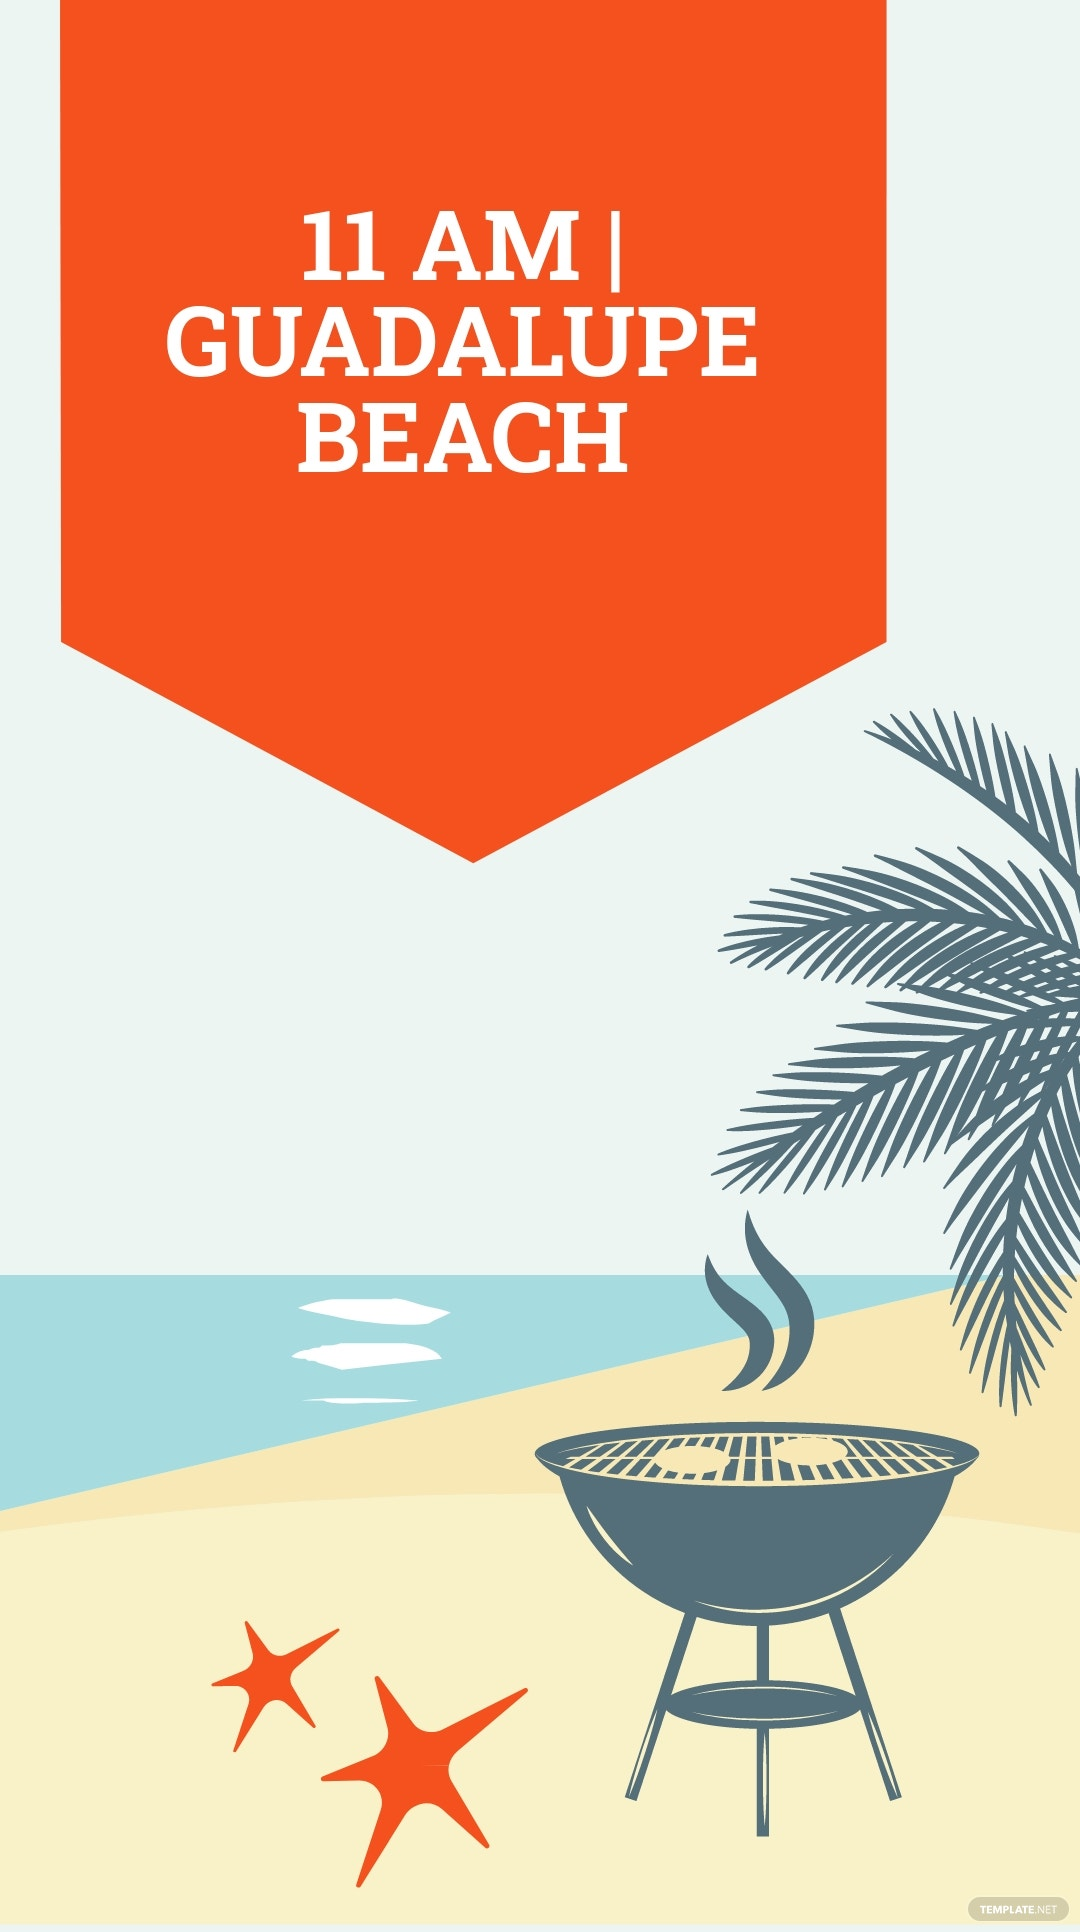 Bbq Beach Party Instagram Story Template 1.jpe